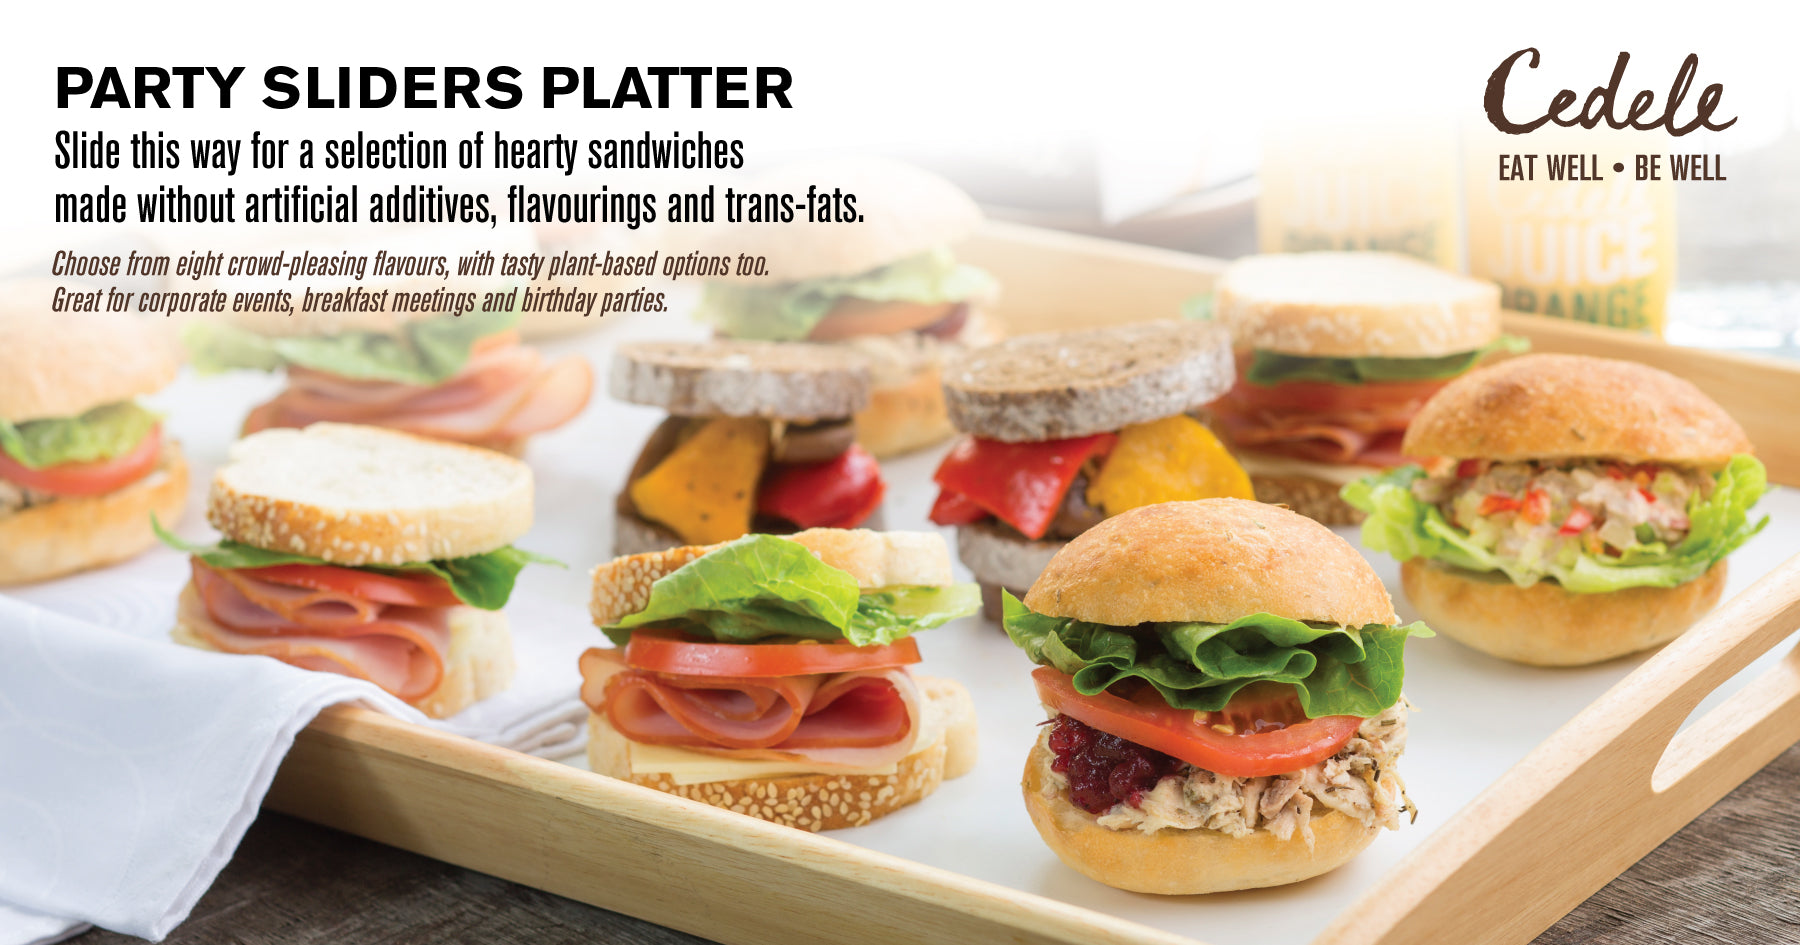 Party Sliders Platter